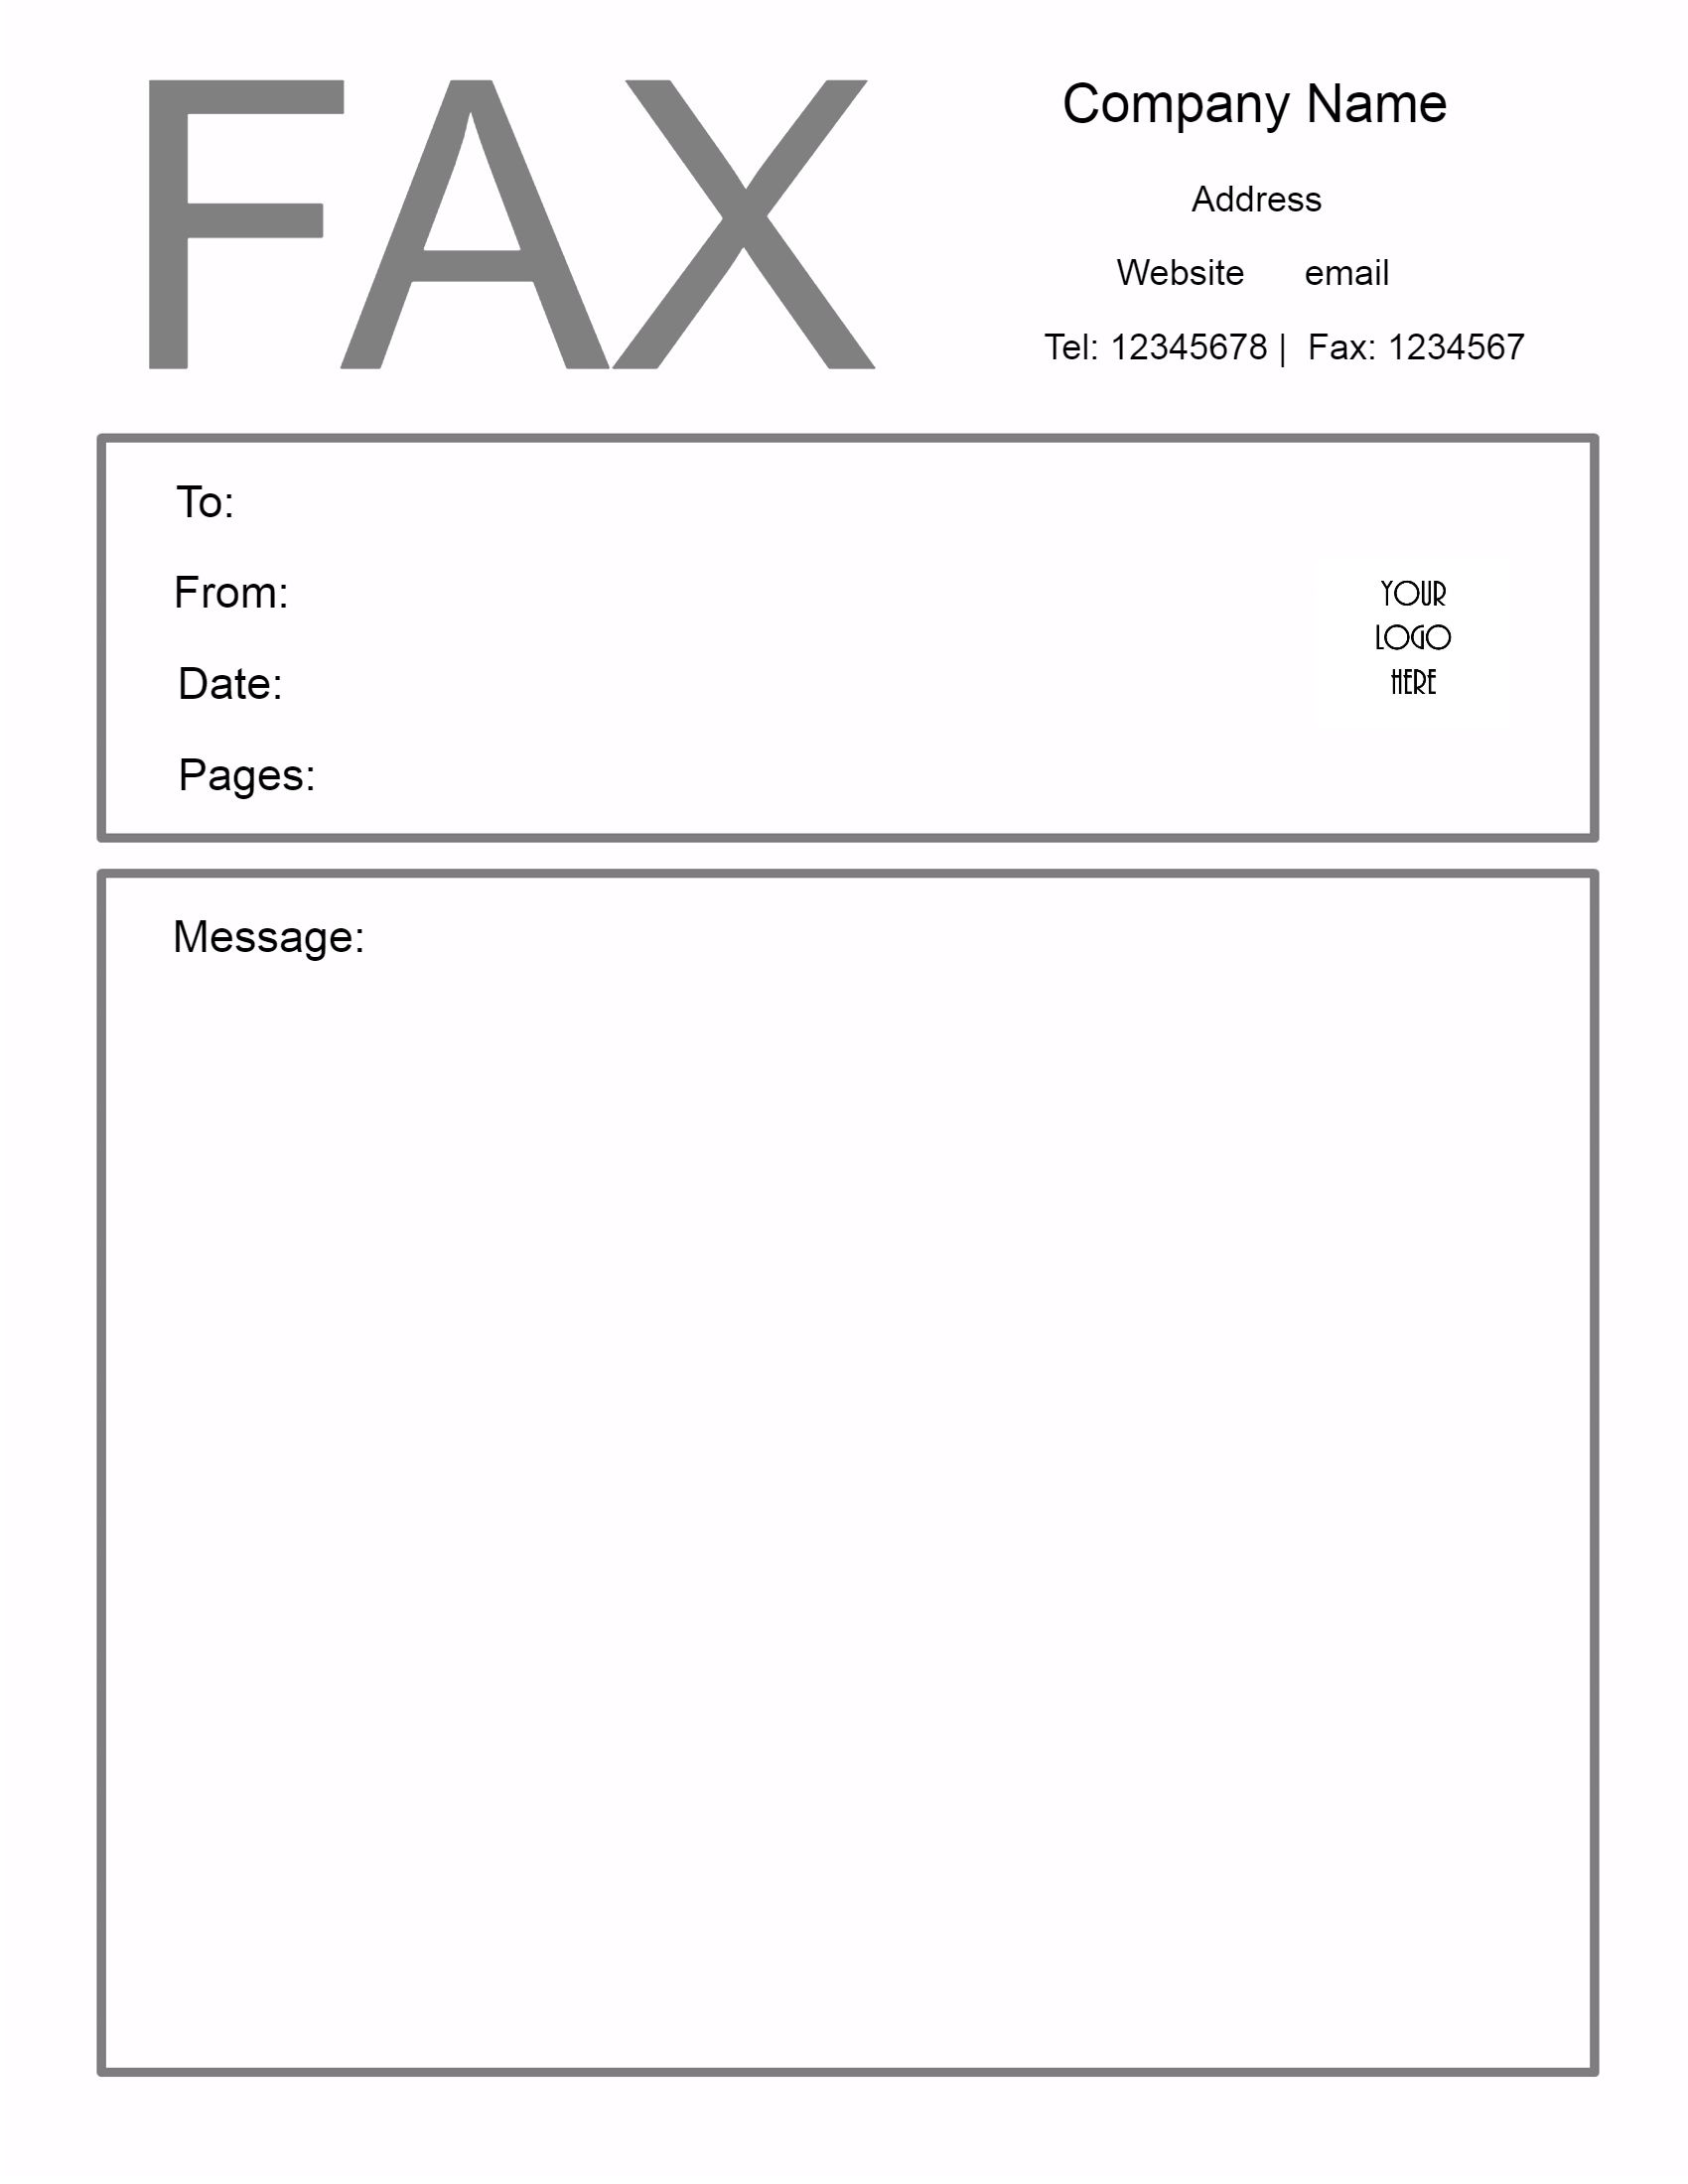 Free Fax Cover Sheet Template | Customize Online then Print